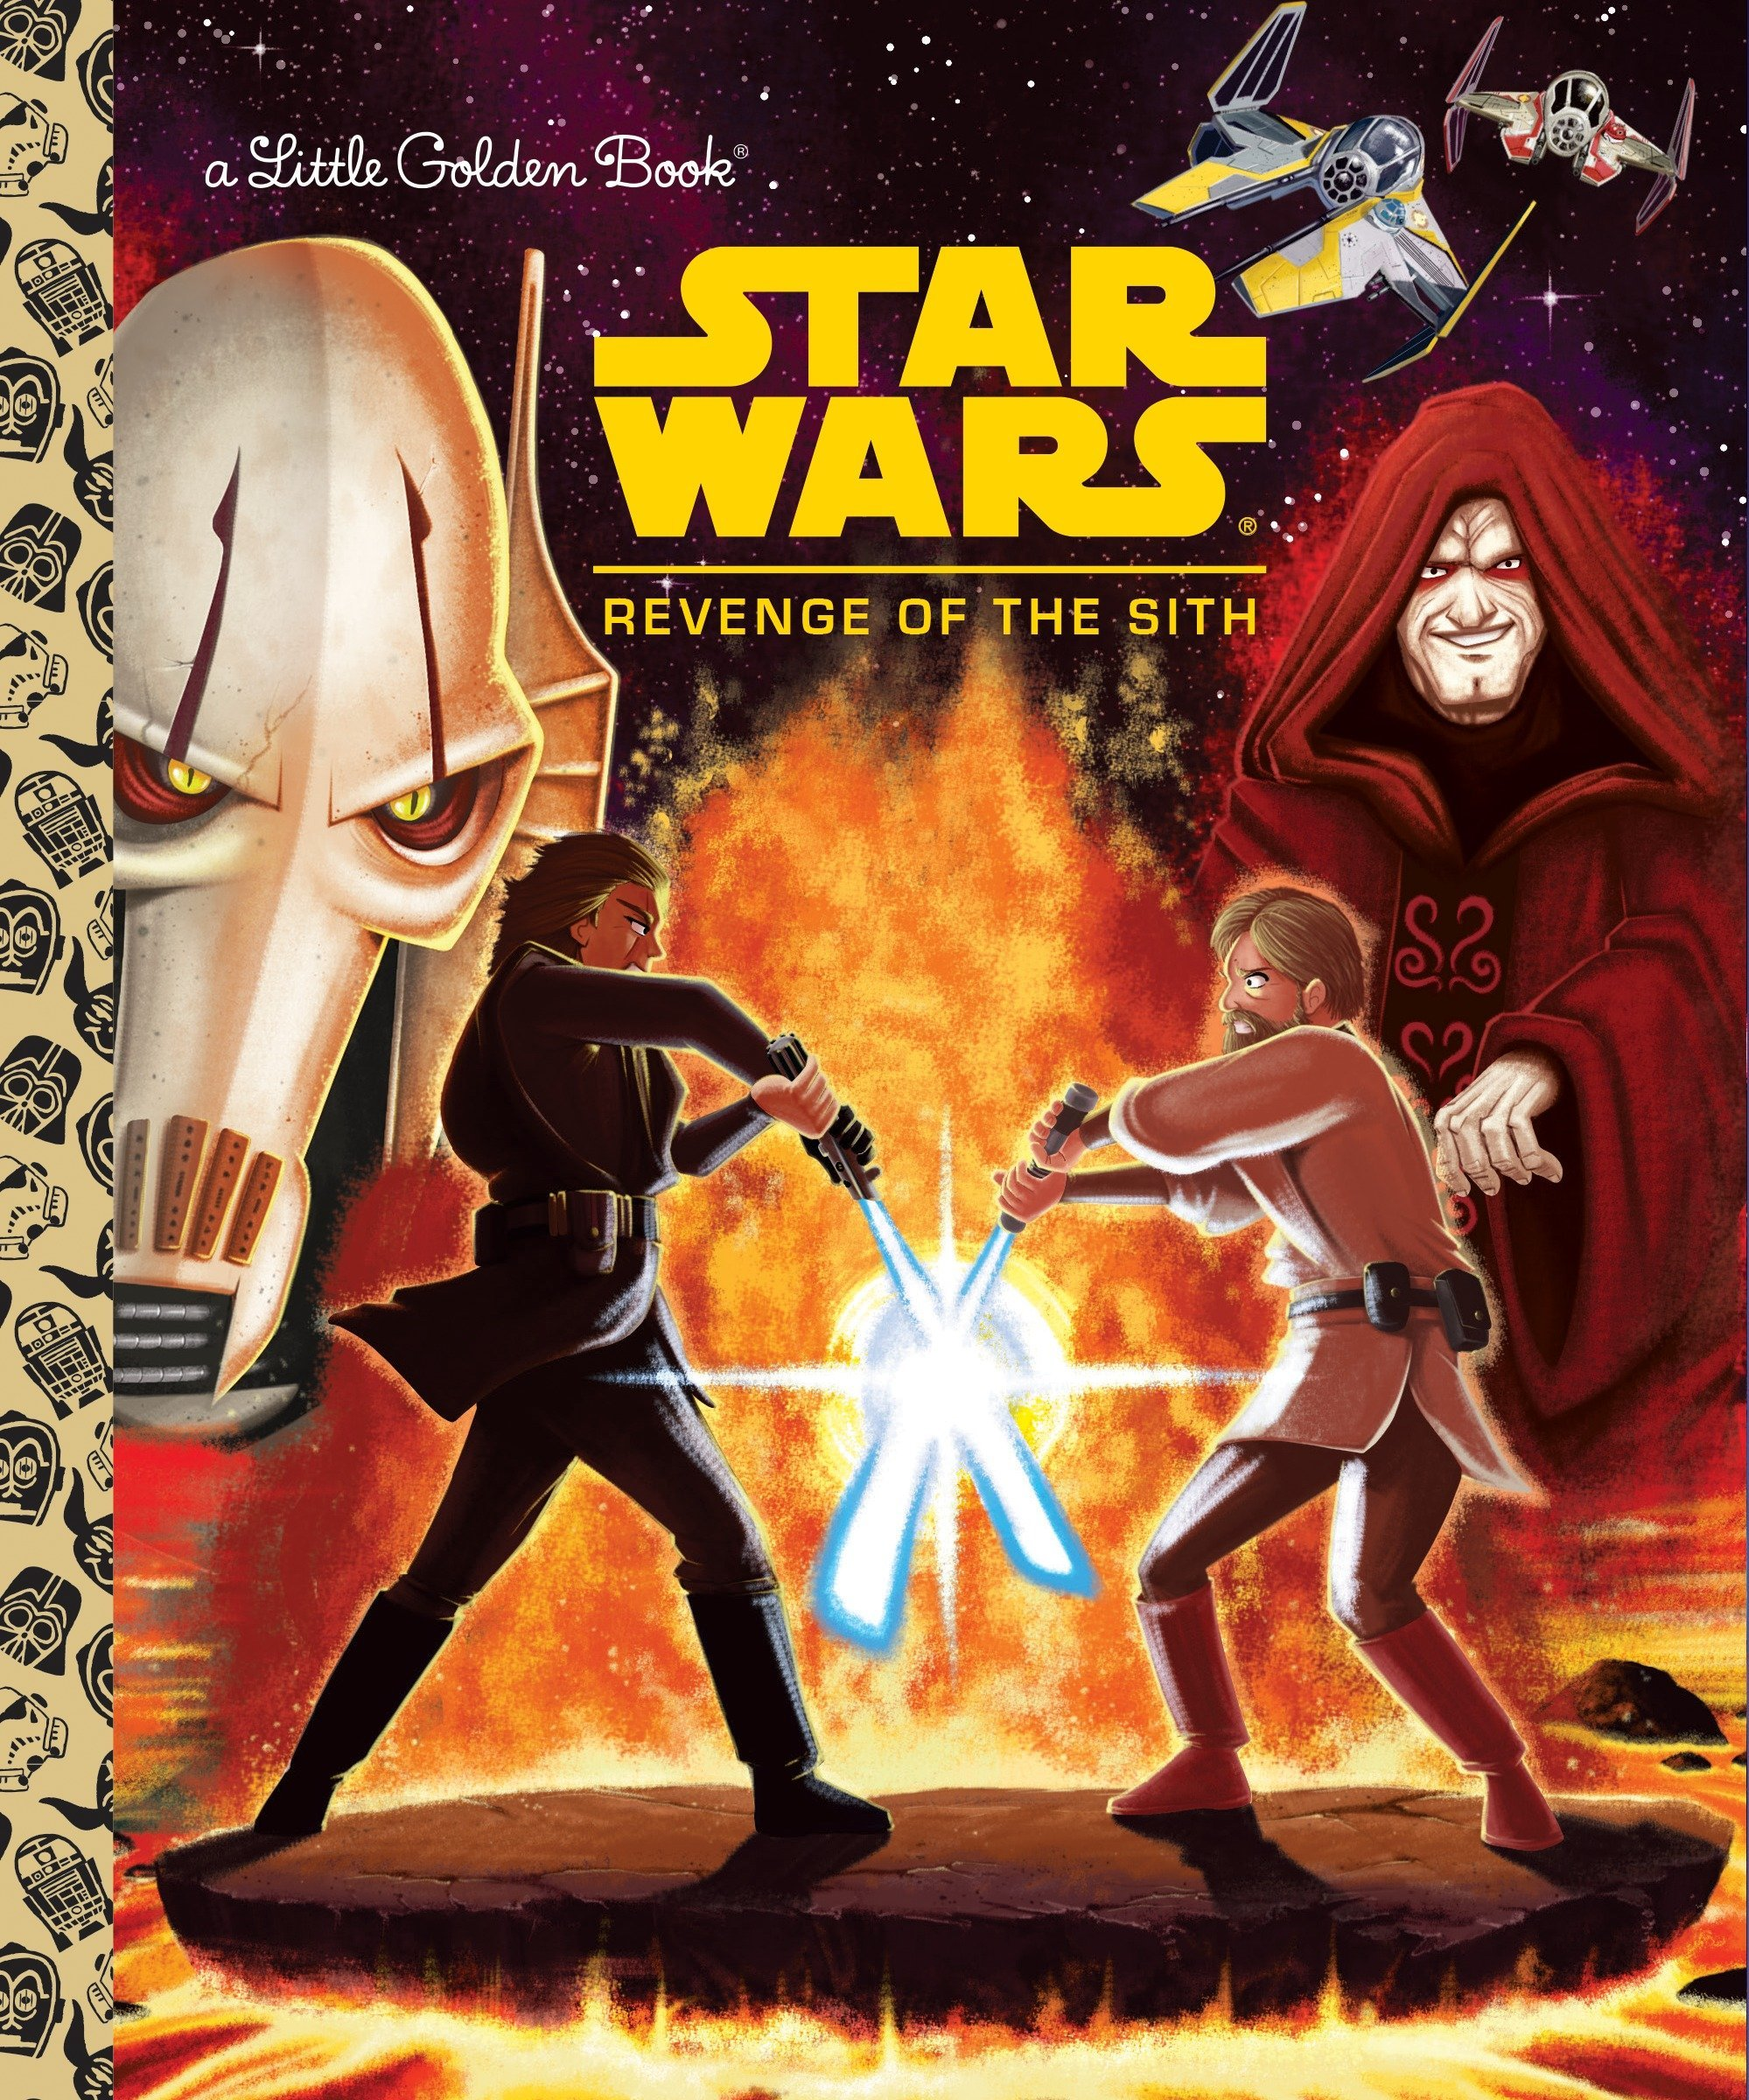 Star Wars: Revenge of the Sith  (Little Golden Book)